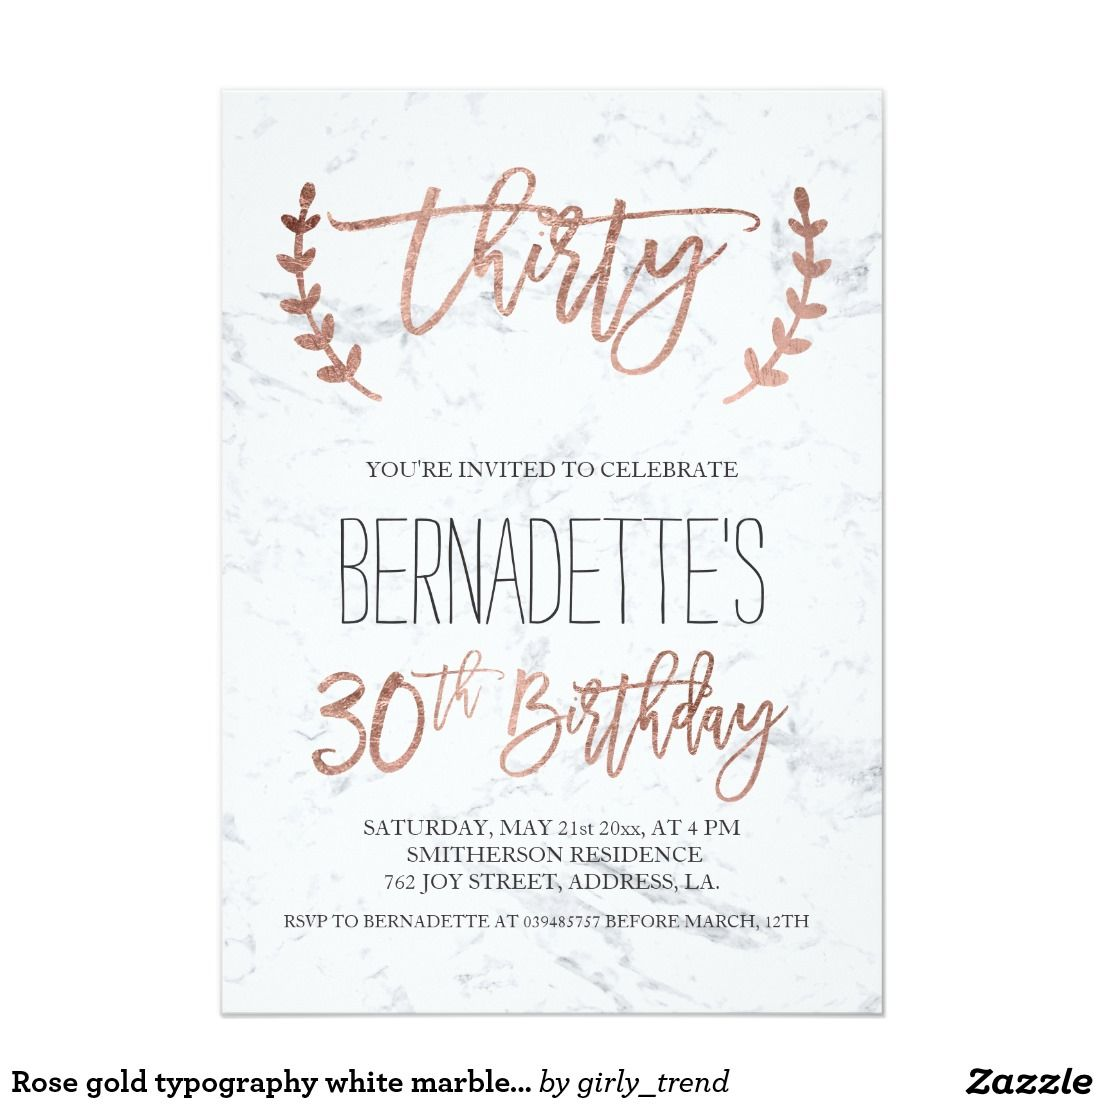 Rose gold typography white marble 30th Birthday Card 30th birthday